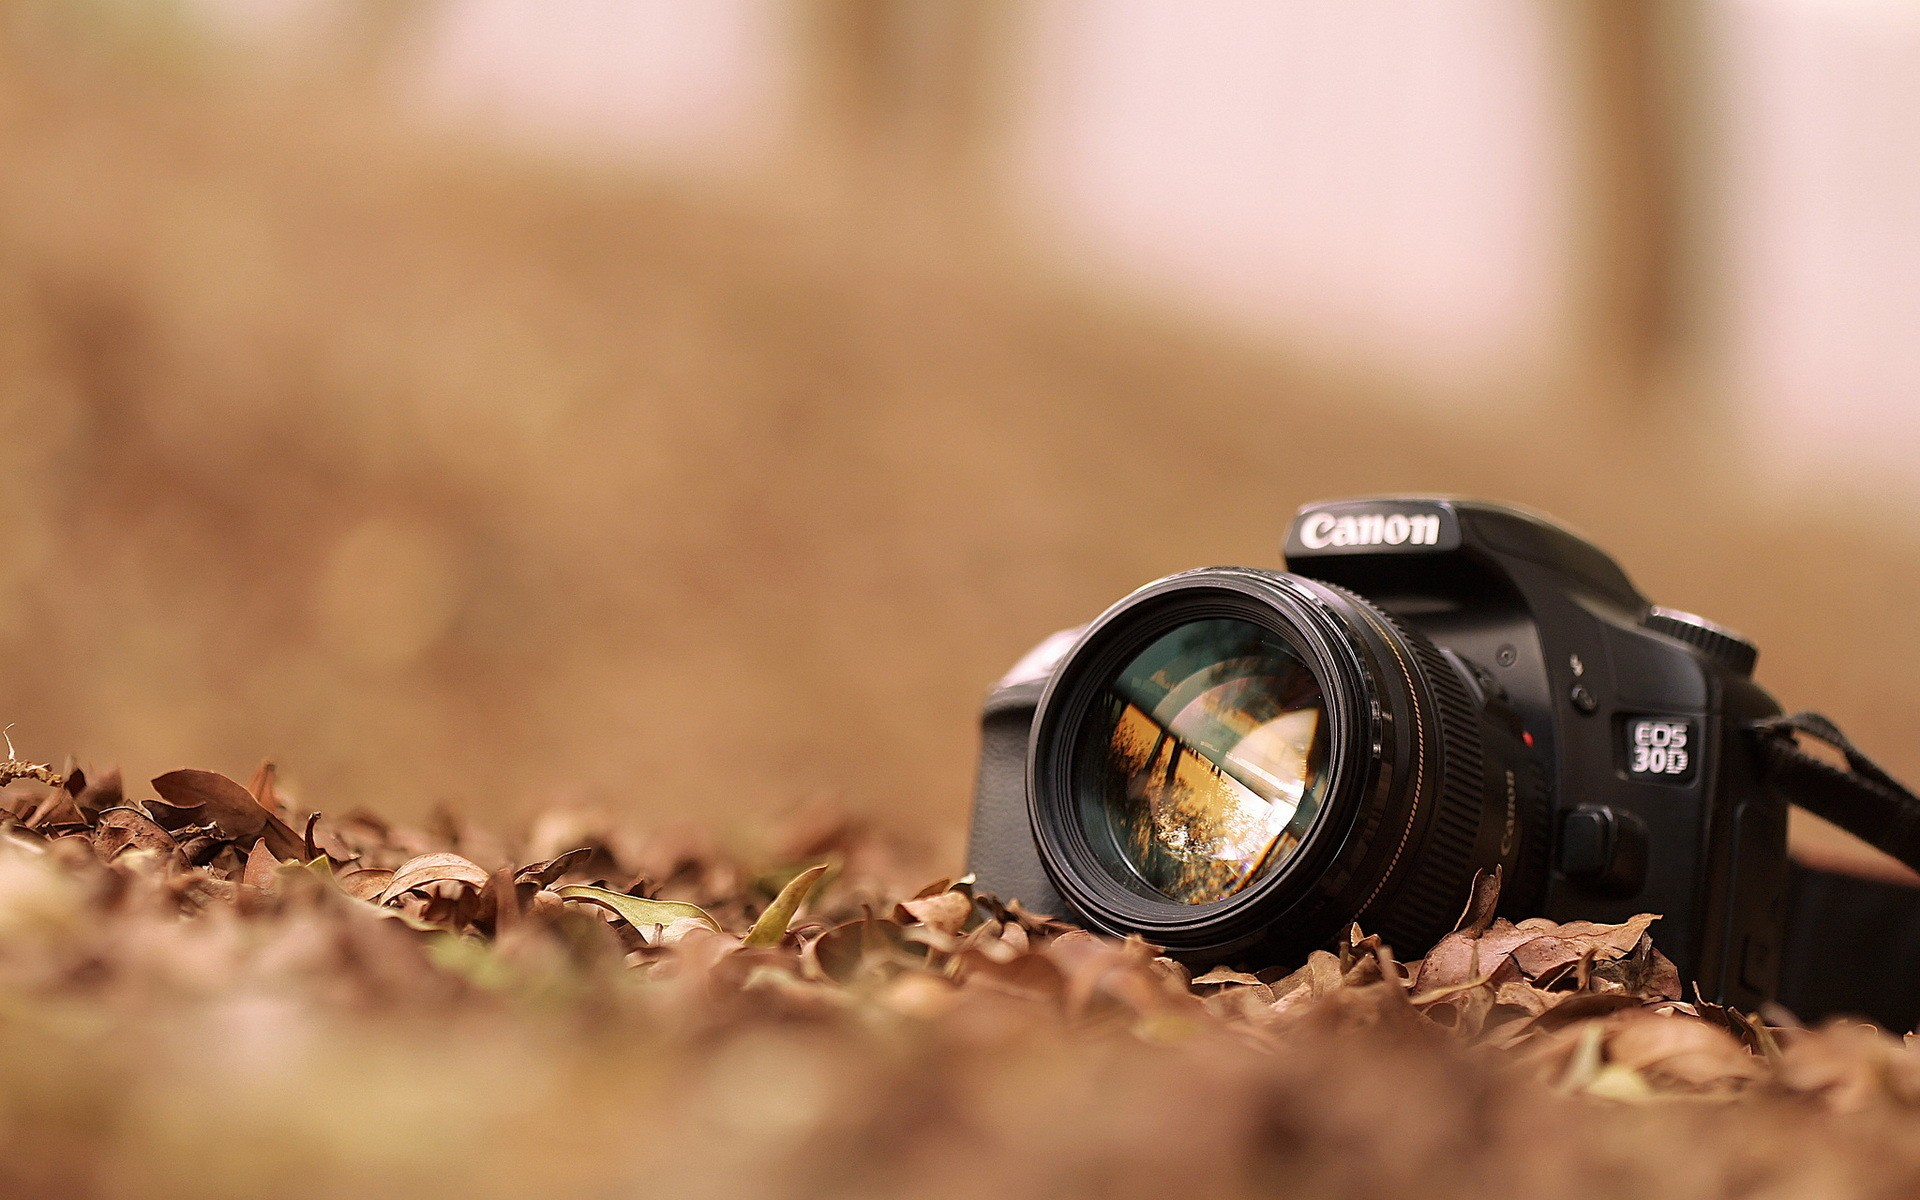 Camera Canon With Leaves